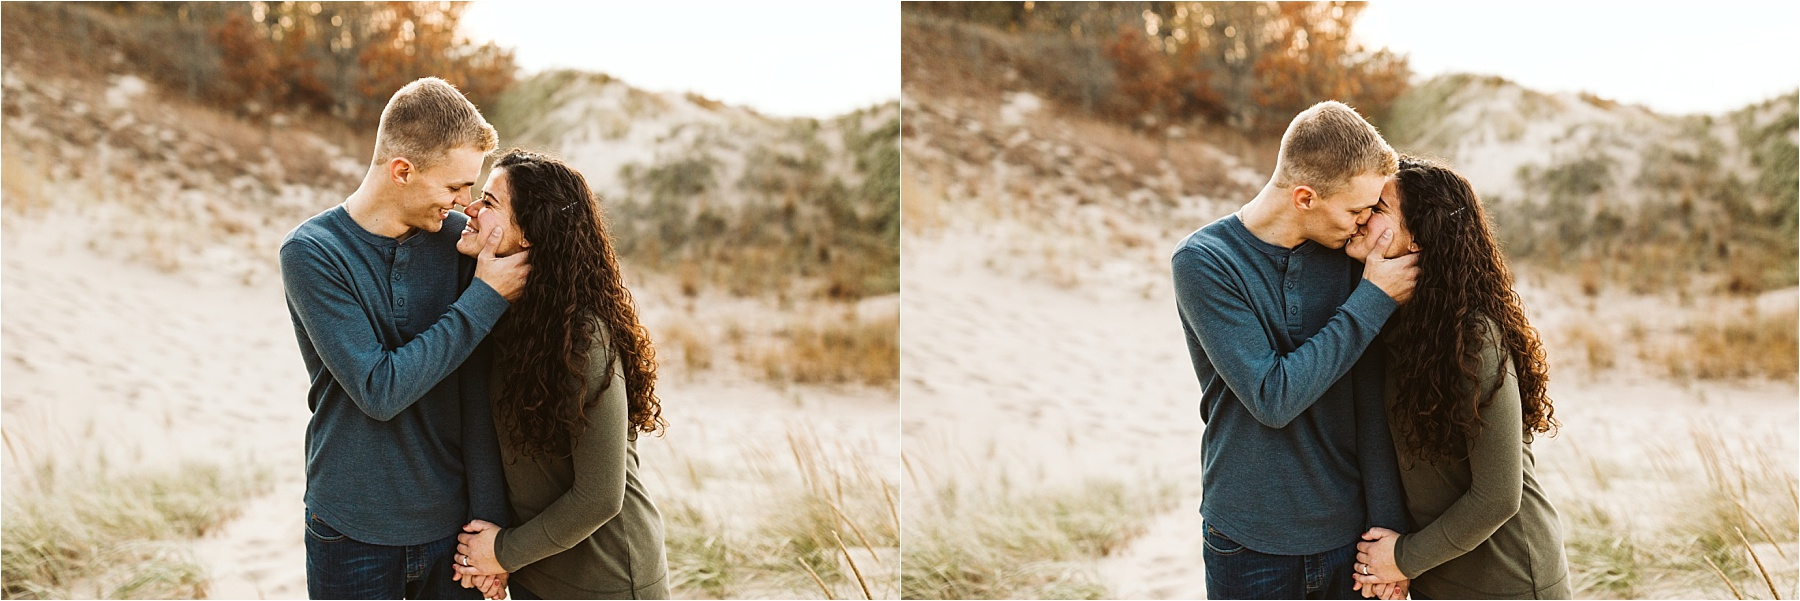 Indiana Dunes Beach Engagement Session_0012.jpg